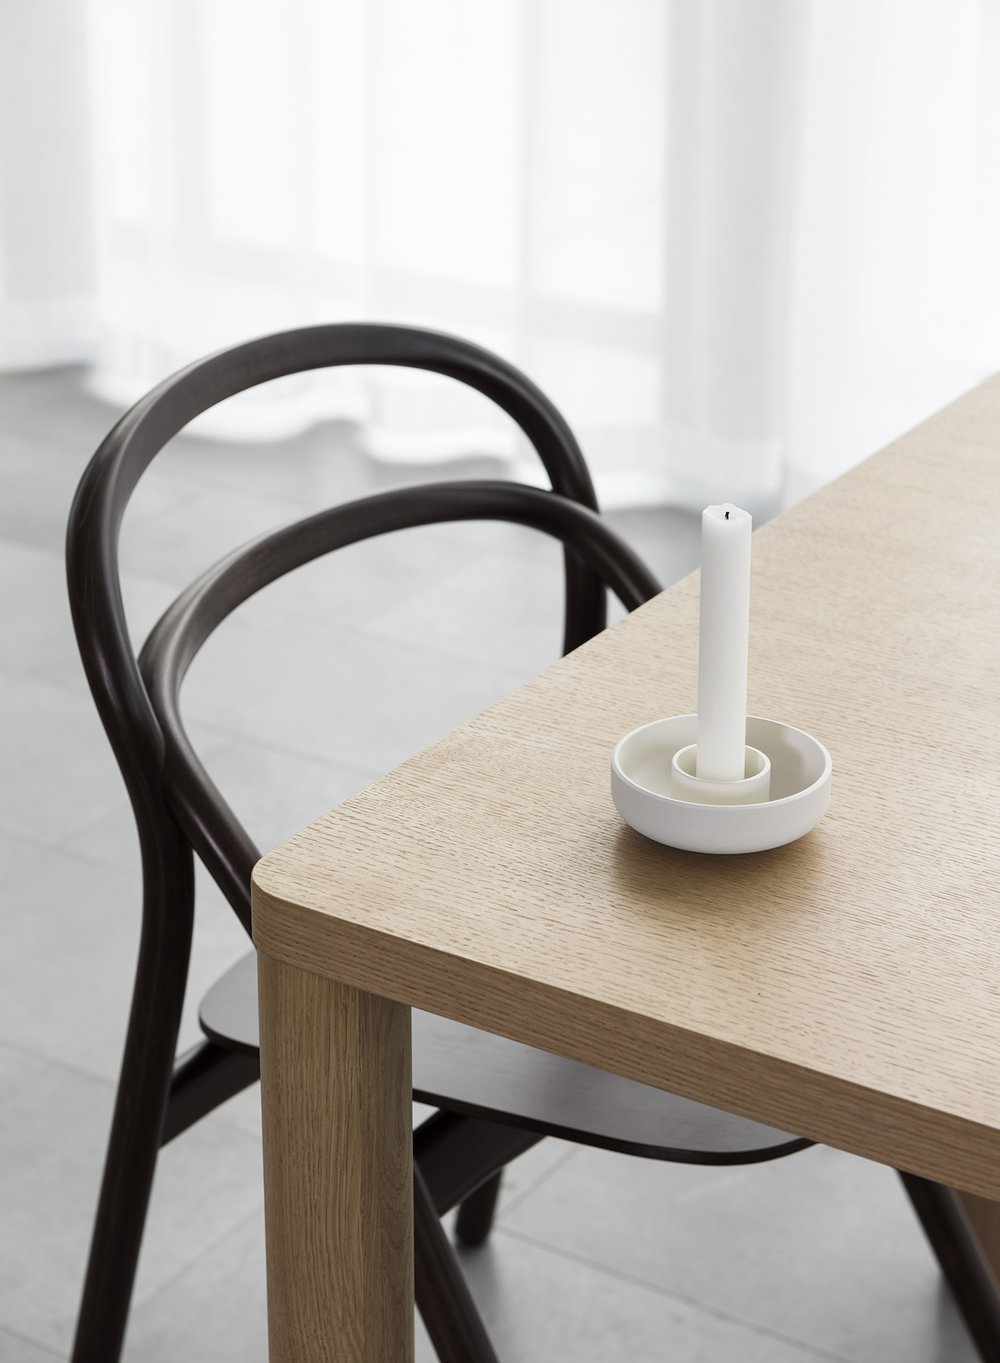 Udon Chair designed by Staffan Holm